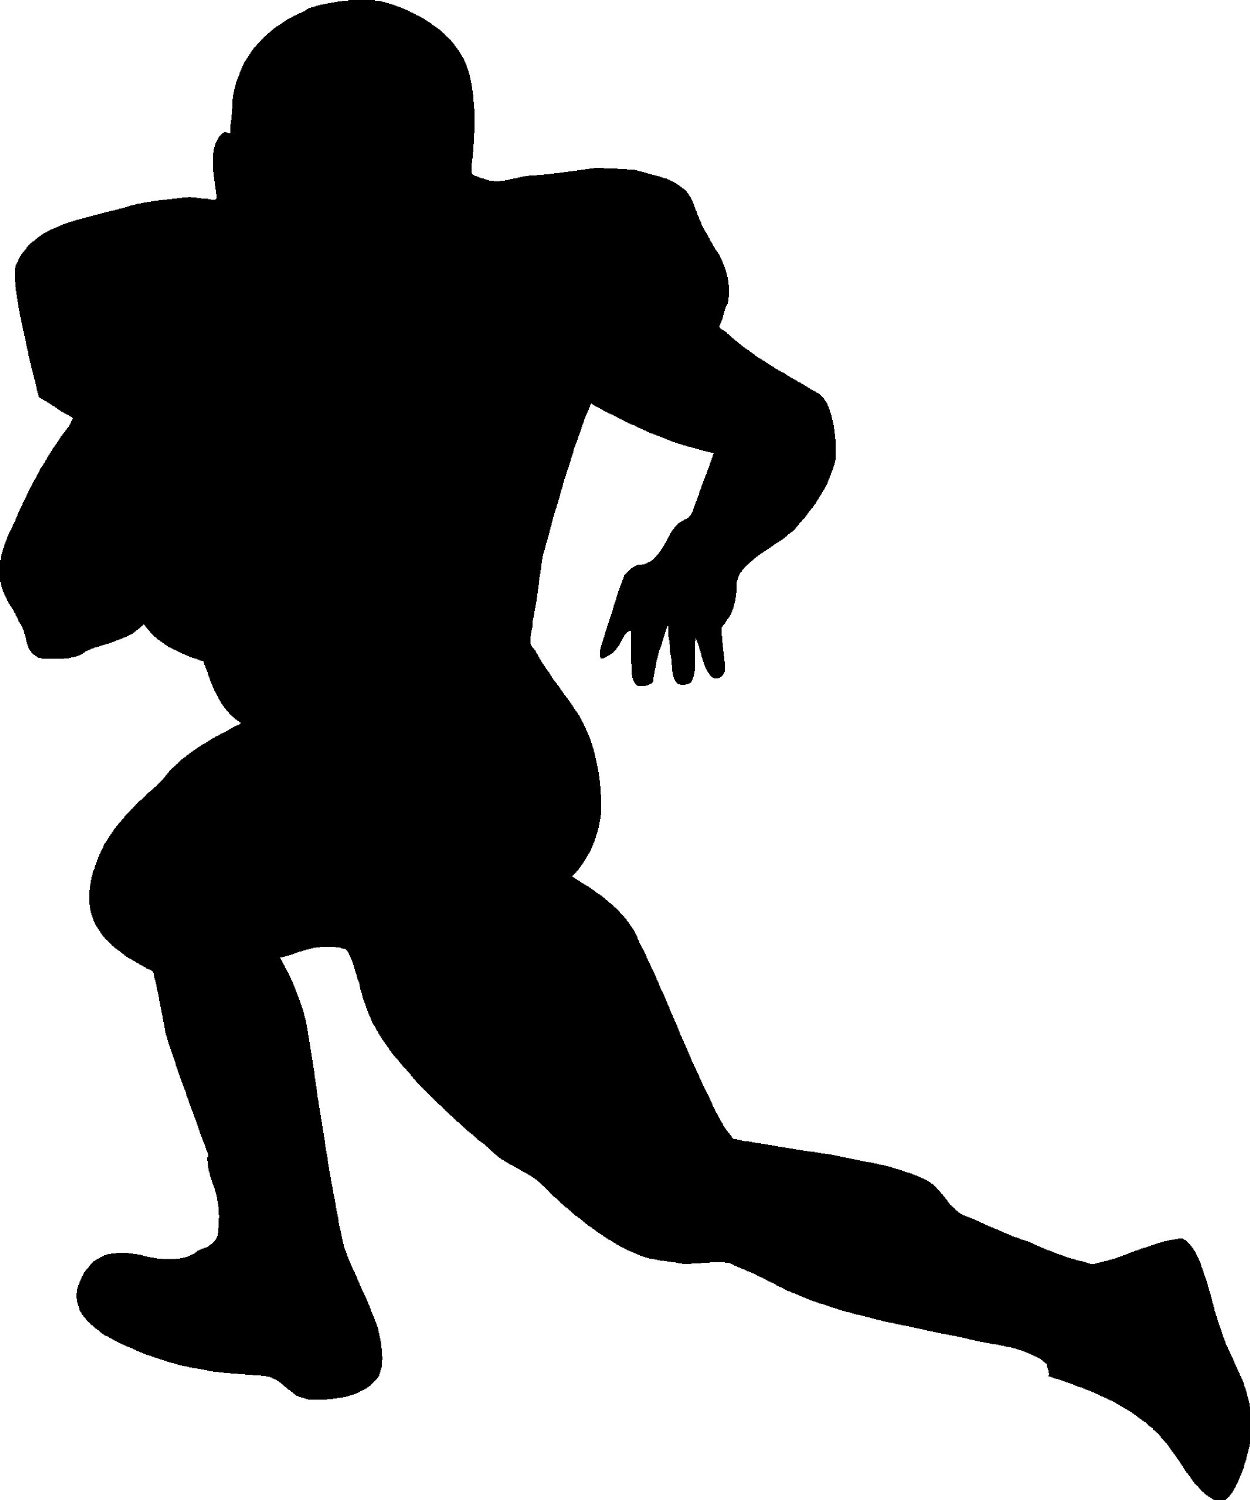 Football clipart silhouette Free Images Player Football Art